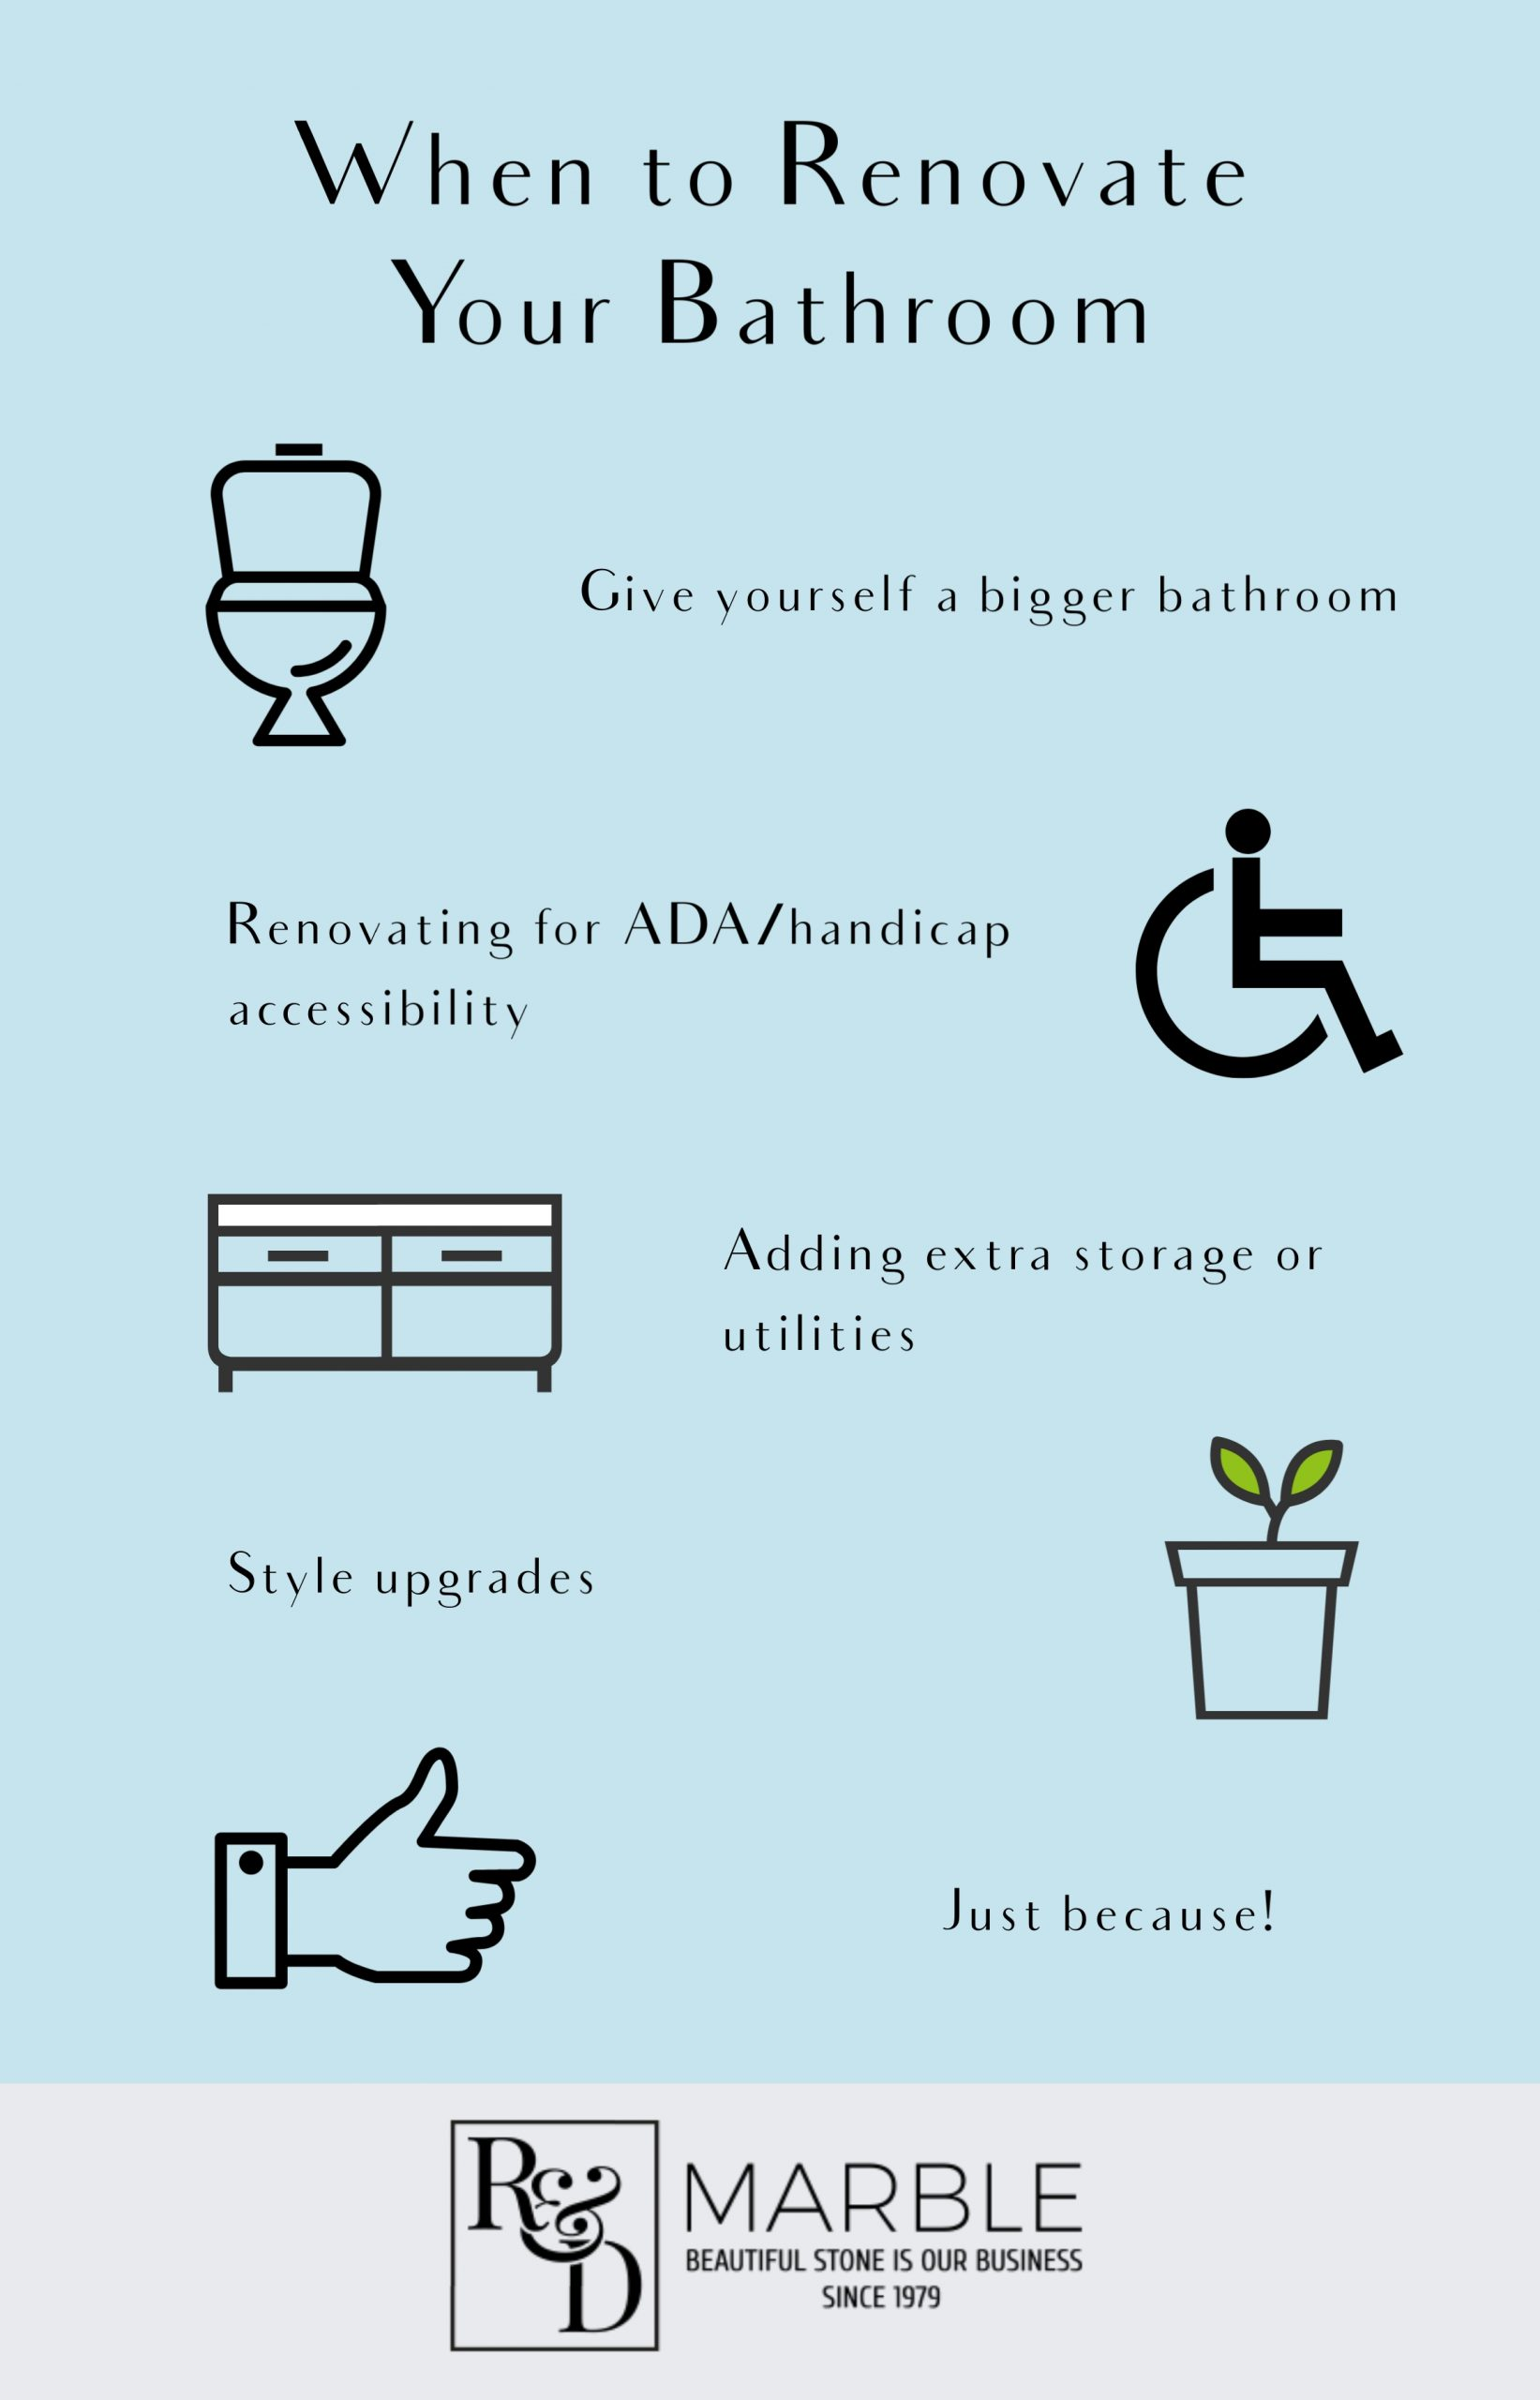 5 reasons to renovate your bathroom r&d marble, inc,. montgomery, tx